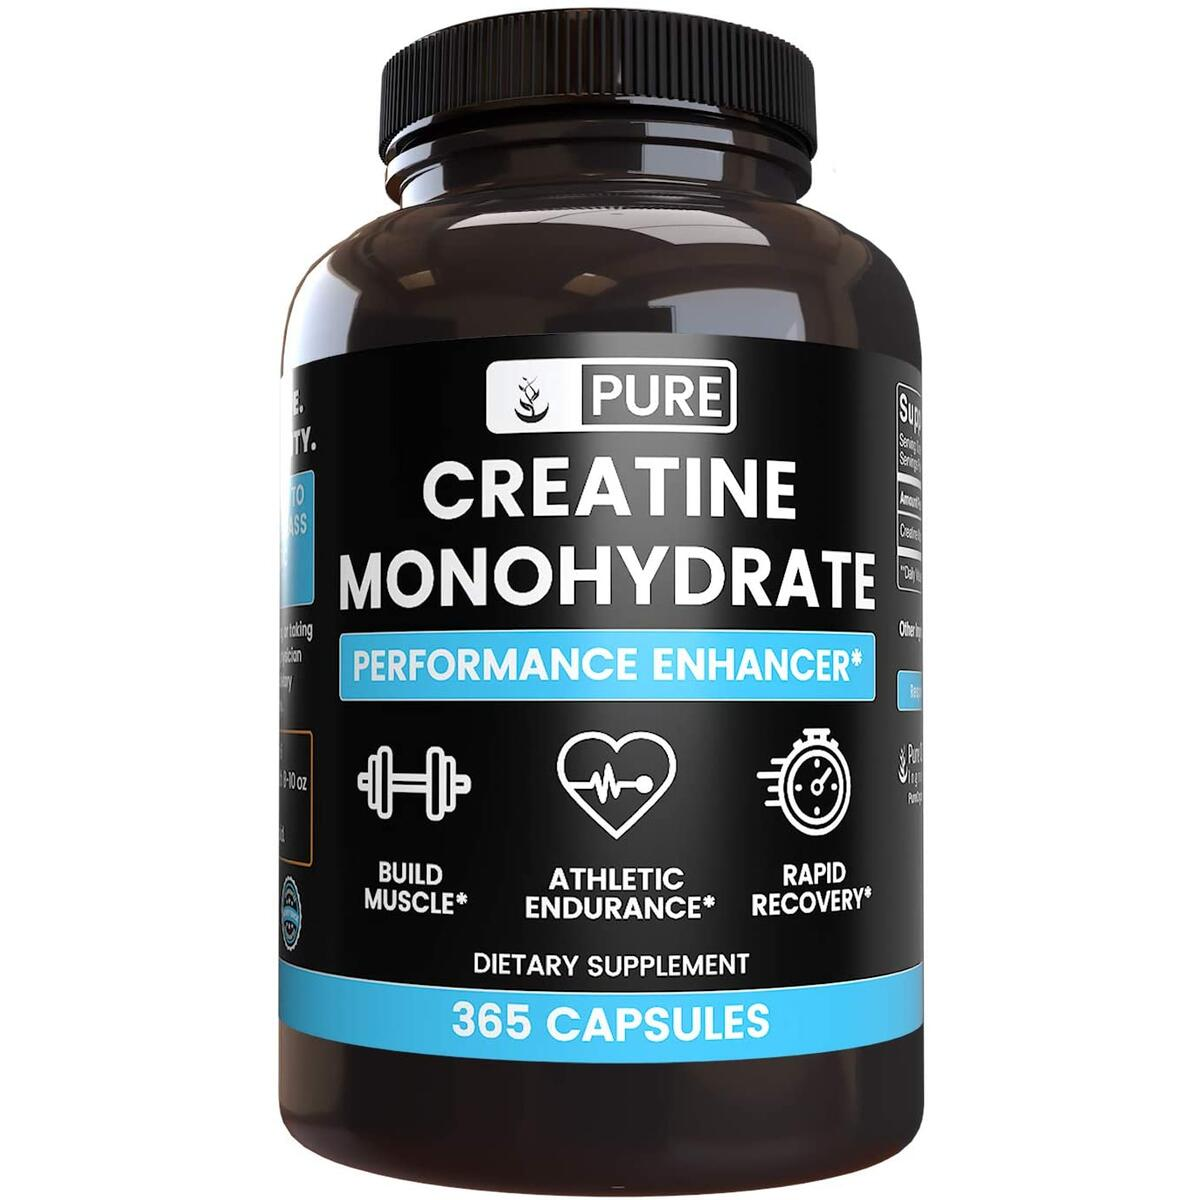 Creatine Monohydrate, 365 Capsules, 1 Month Supply, No Stearates or Rice Filler, Gluten-Free, Potent, Made in USA, 2200 mg Serving of Pure Micronized Creatine Monohydrate